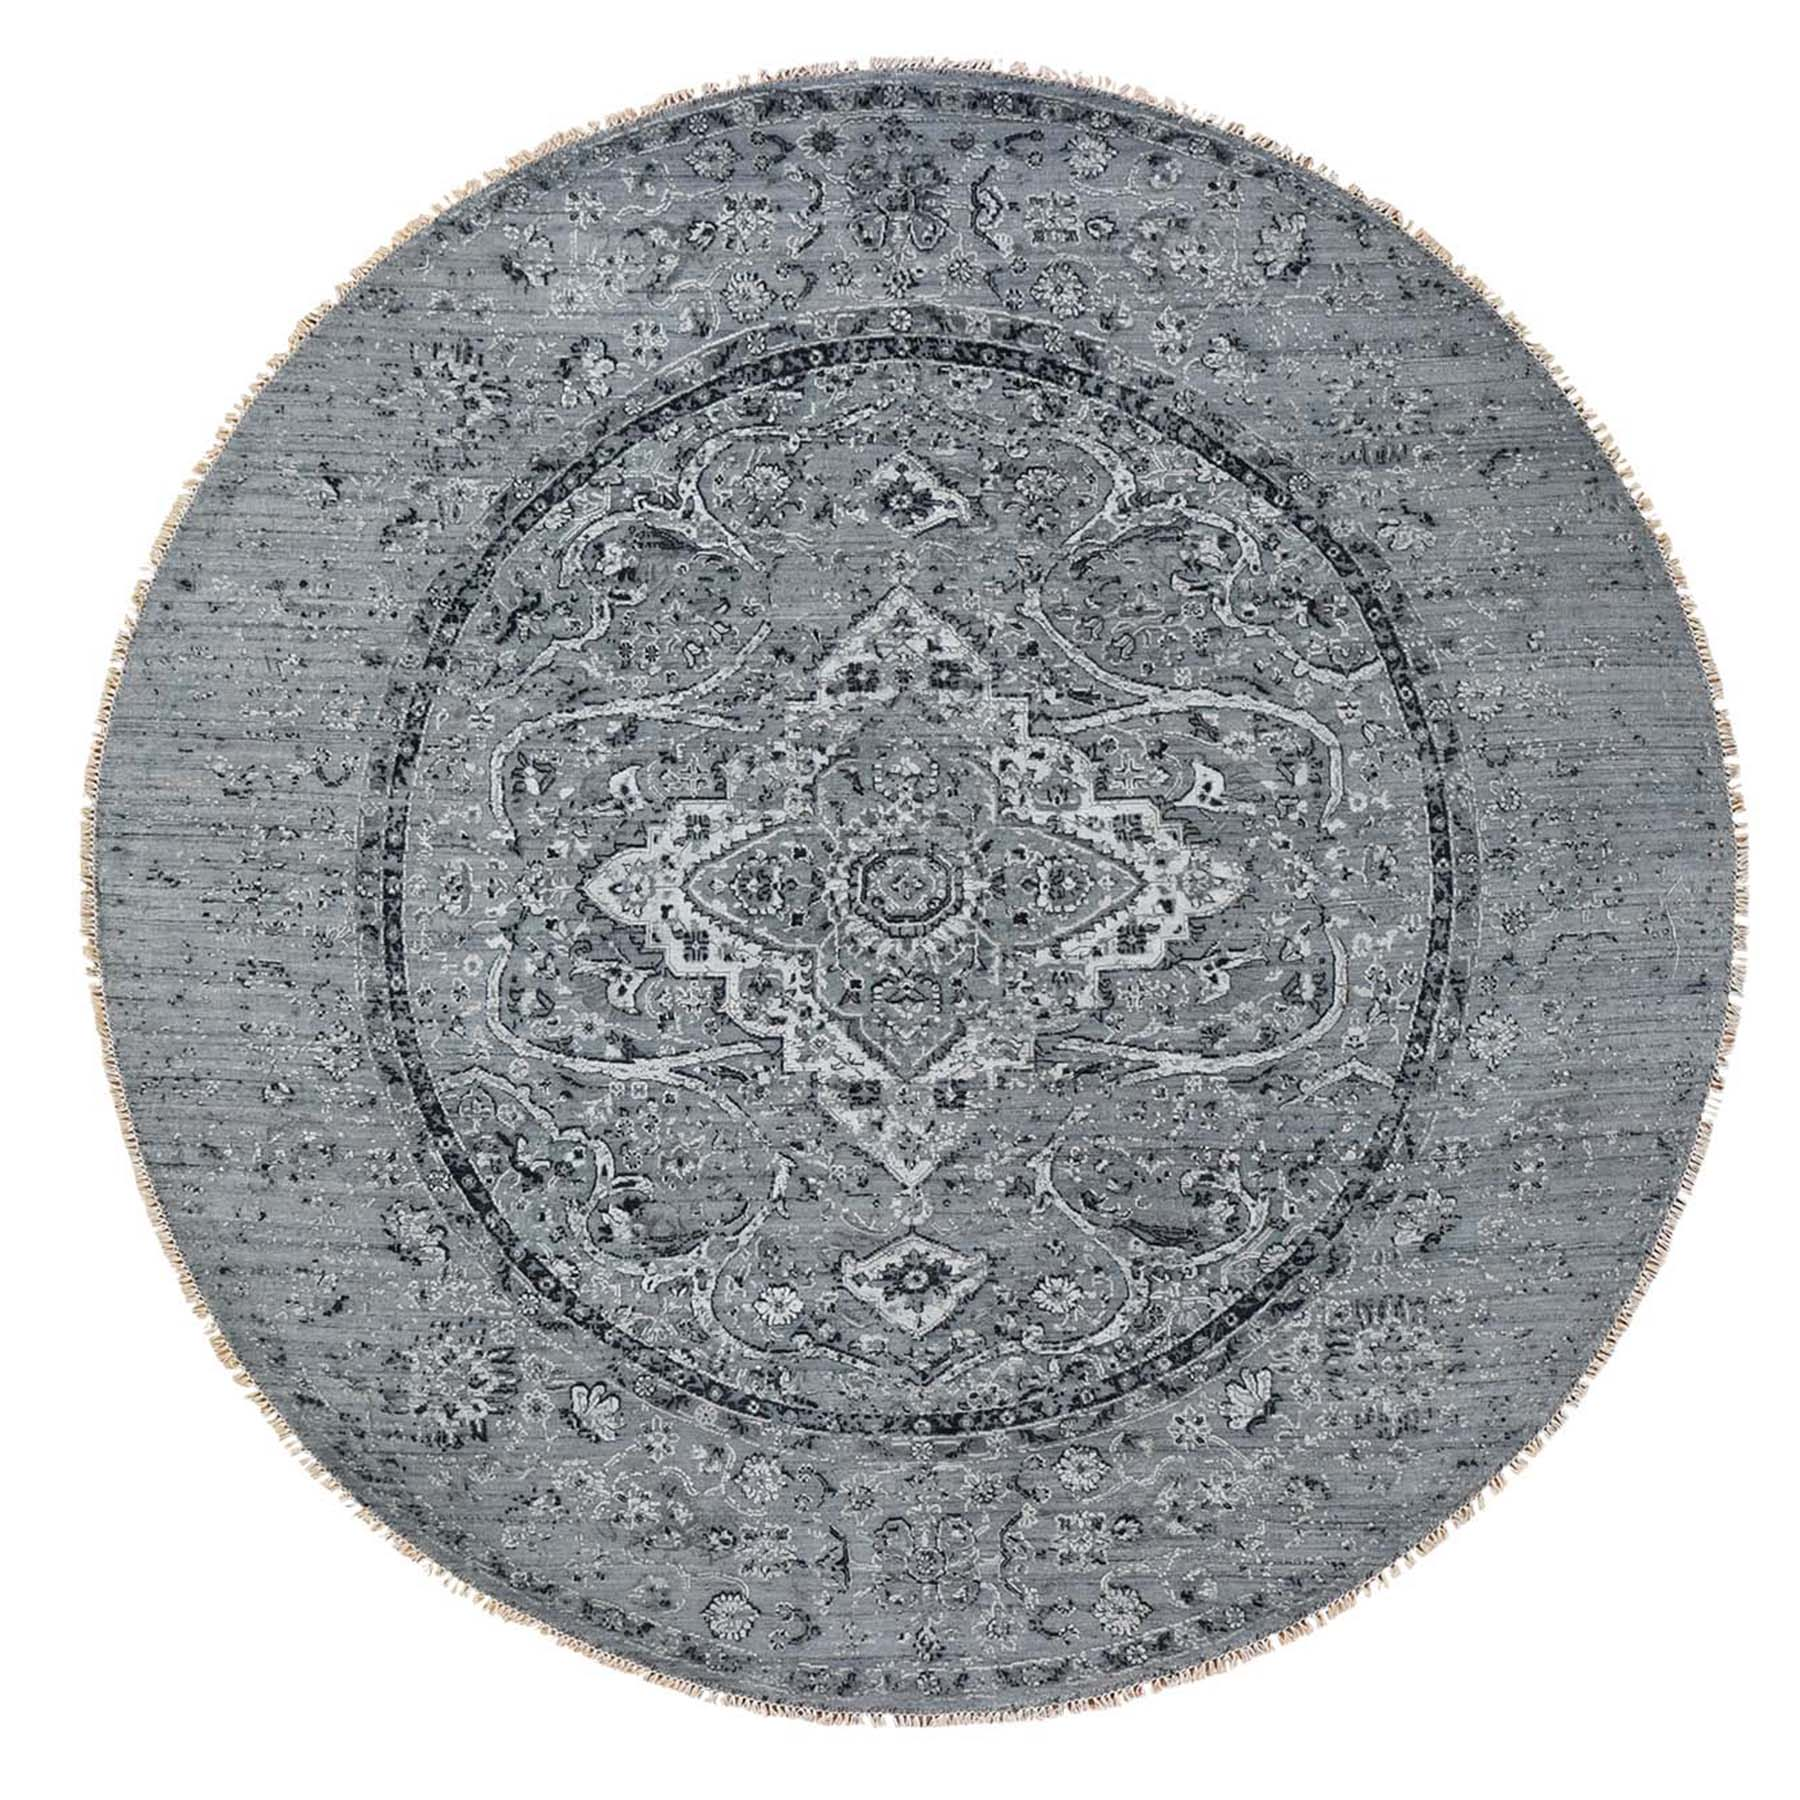 8'X8' Round Gray Broken Persian Erased Design Pure Silk With Oxidized Wool Hand-Knotted Oriental Rug moad6b6b